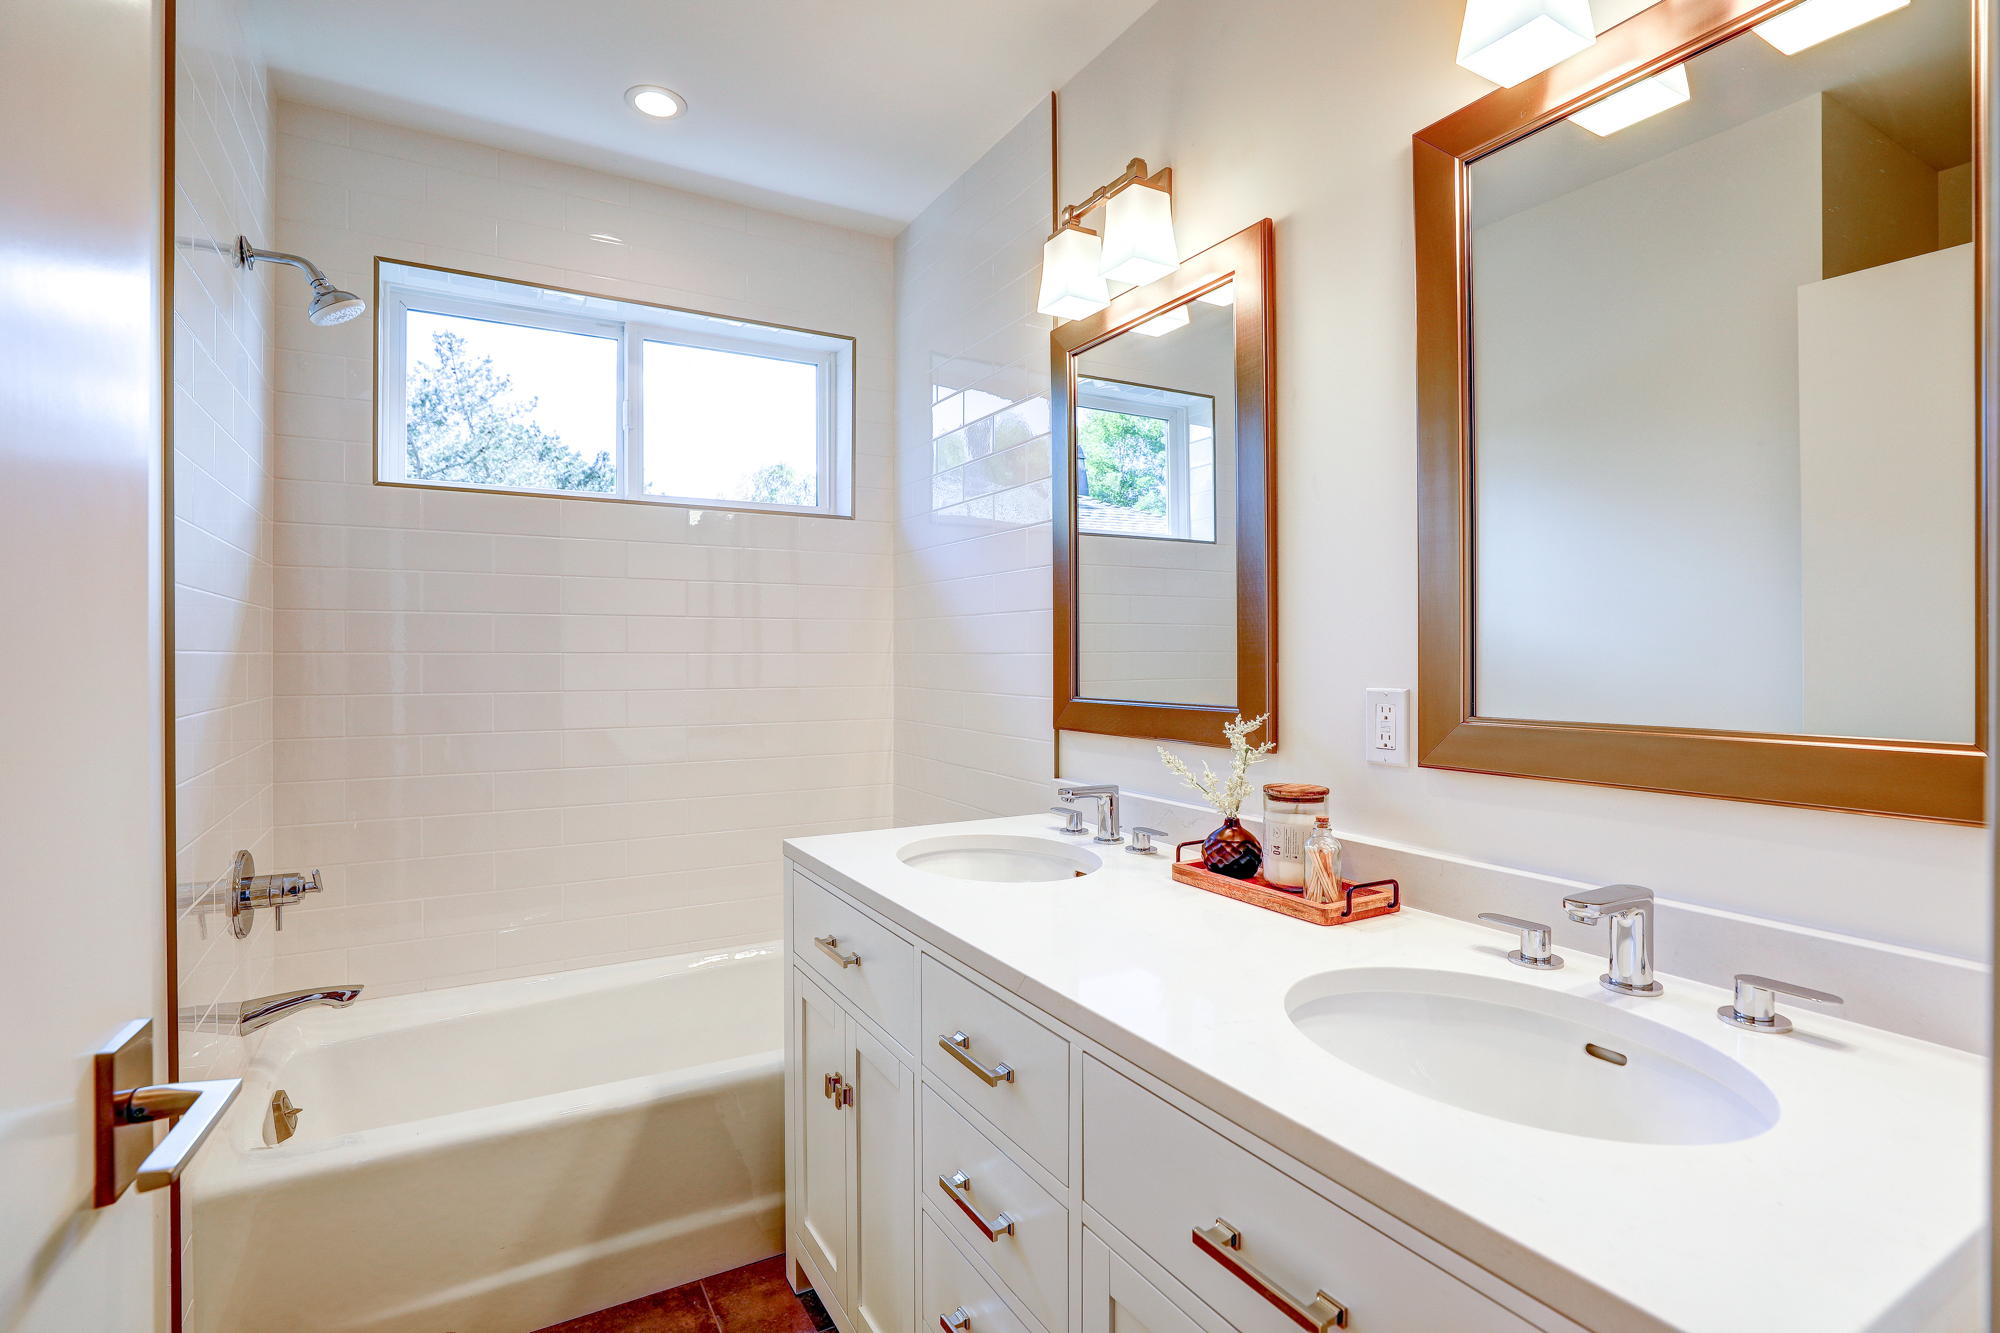 38 Ryan Avenue, Mill Valley - Sycamore Park Homes for sale - 38- Listed by Team Own Marin with Compass Real Estate.jpg